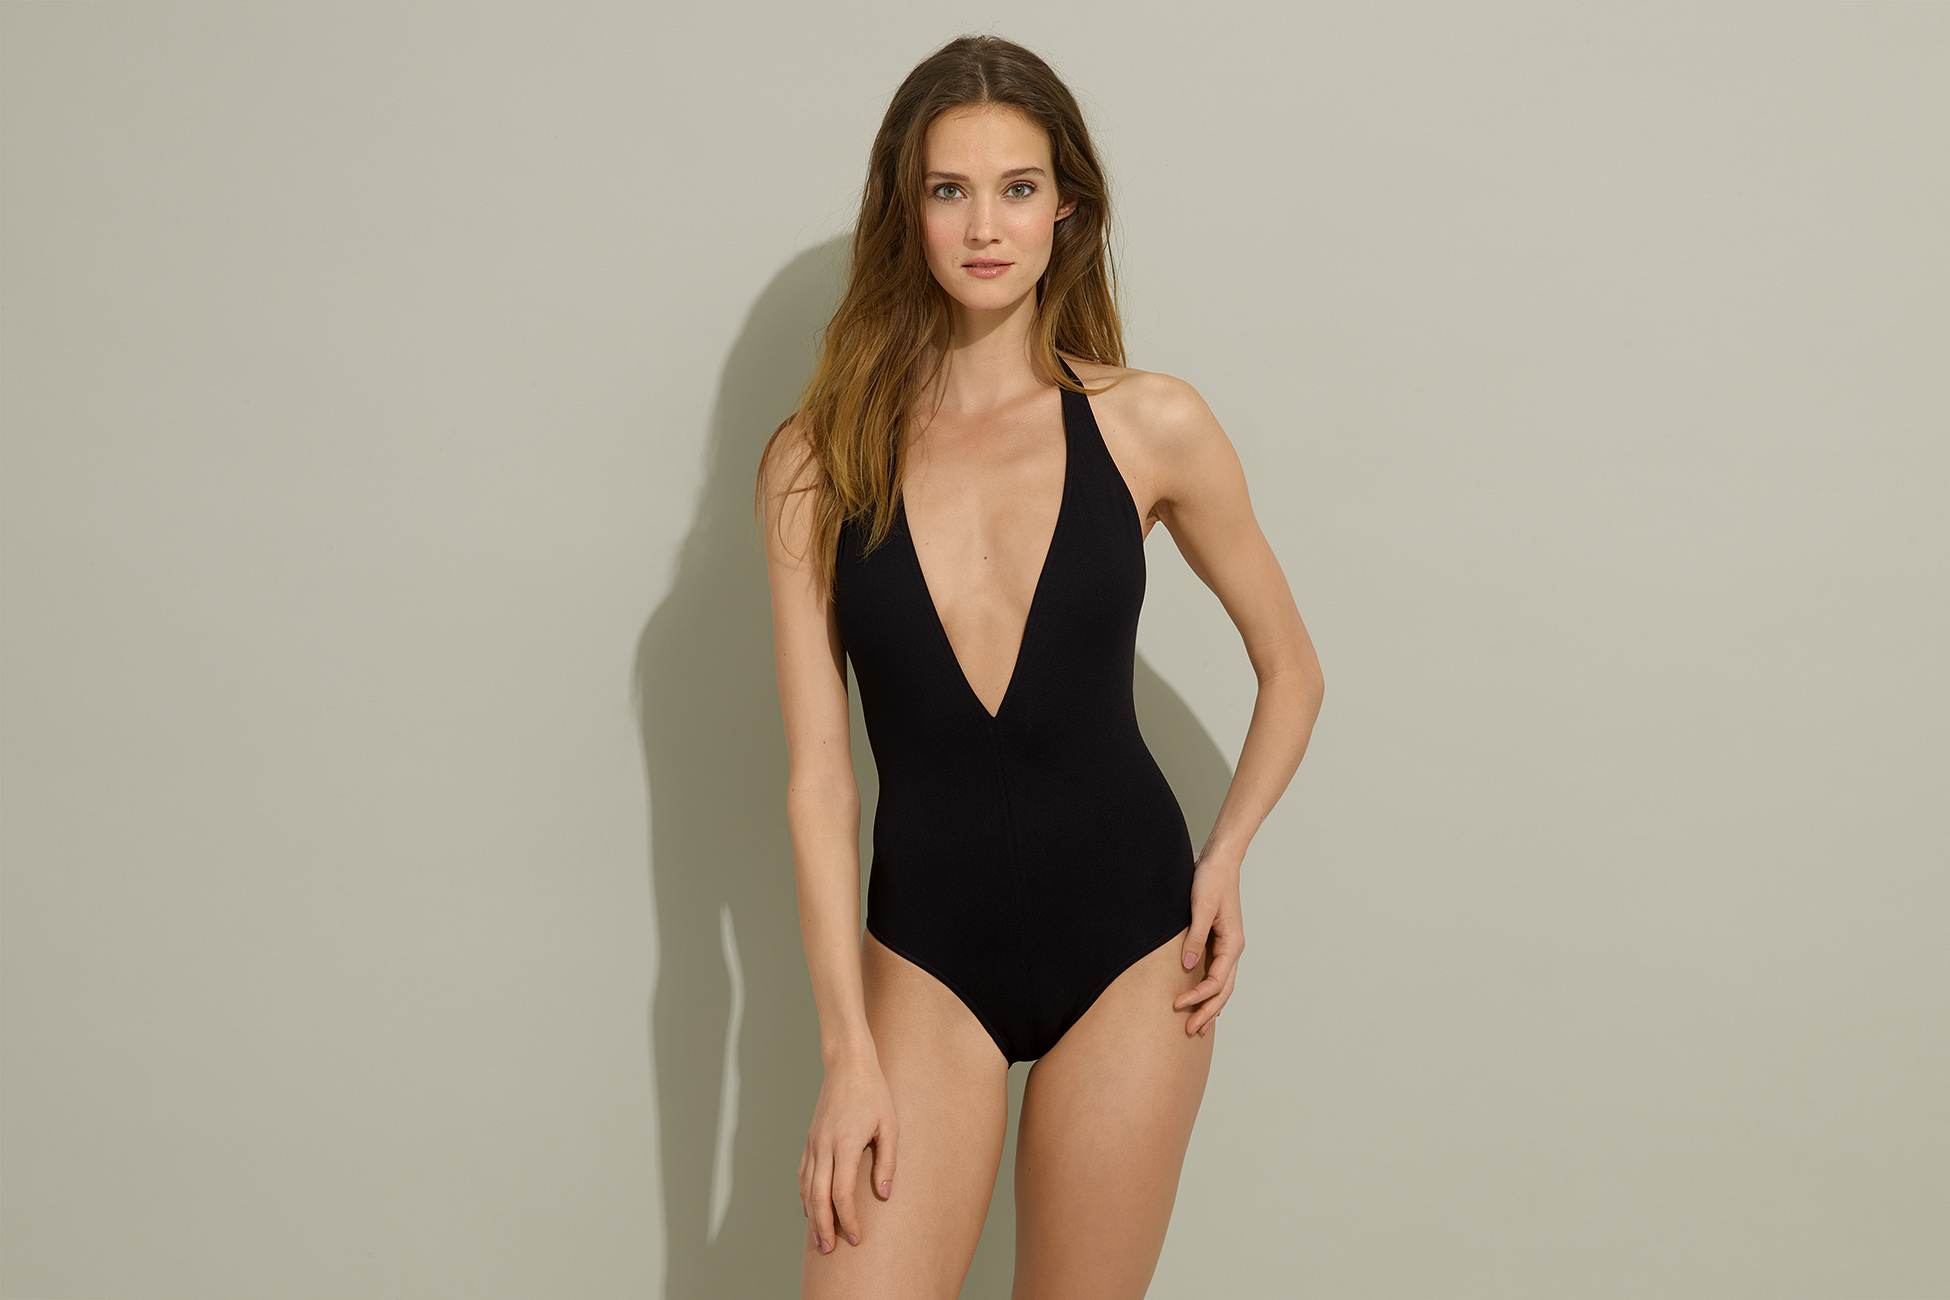 Cachette Sophisticated one-piece standard view 2